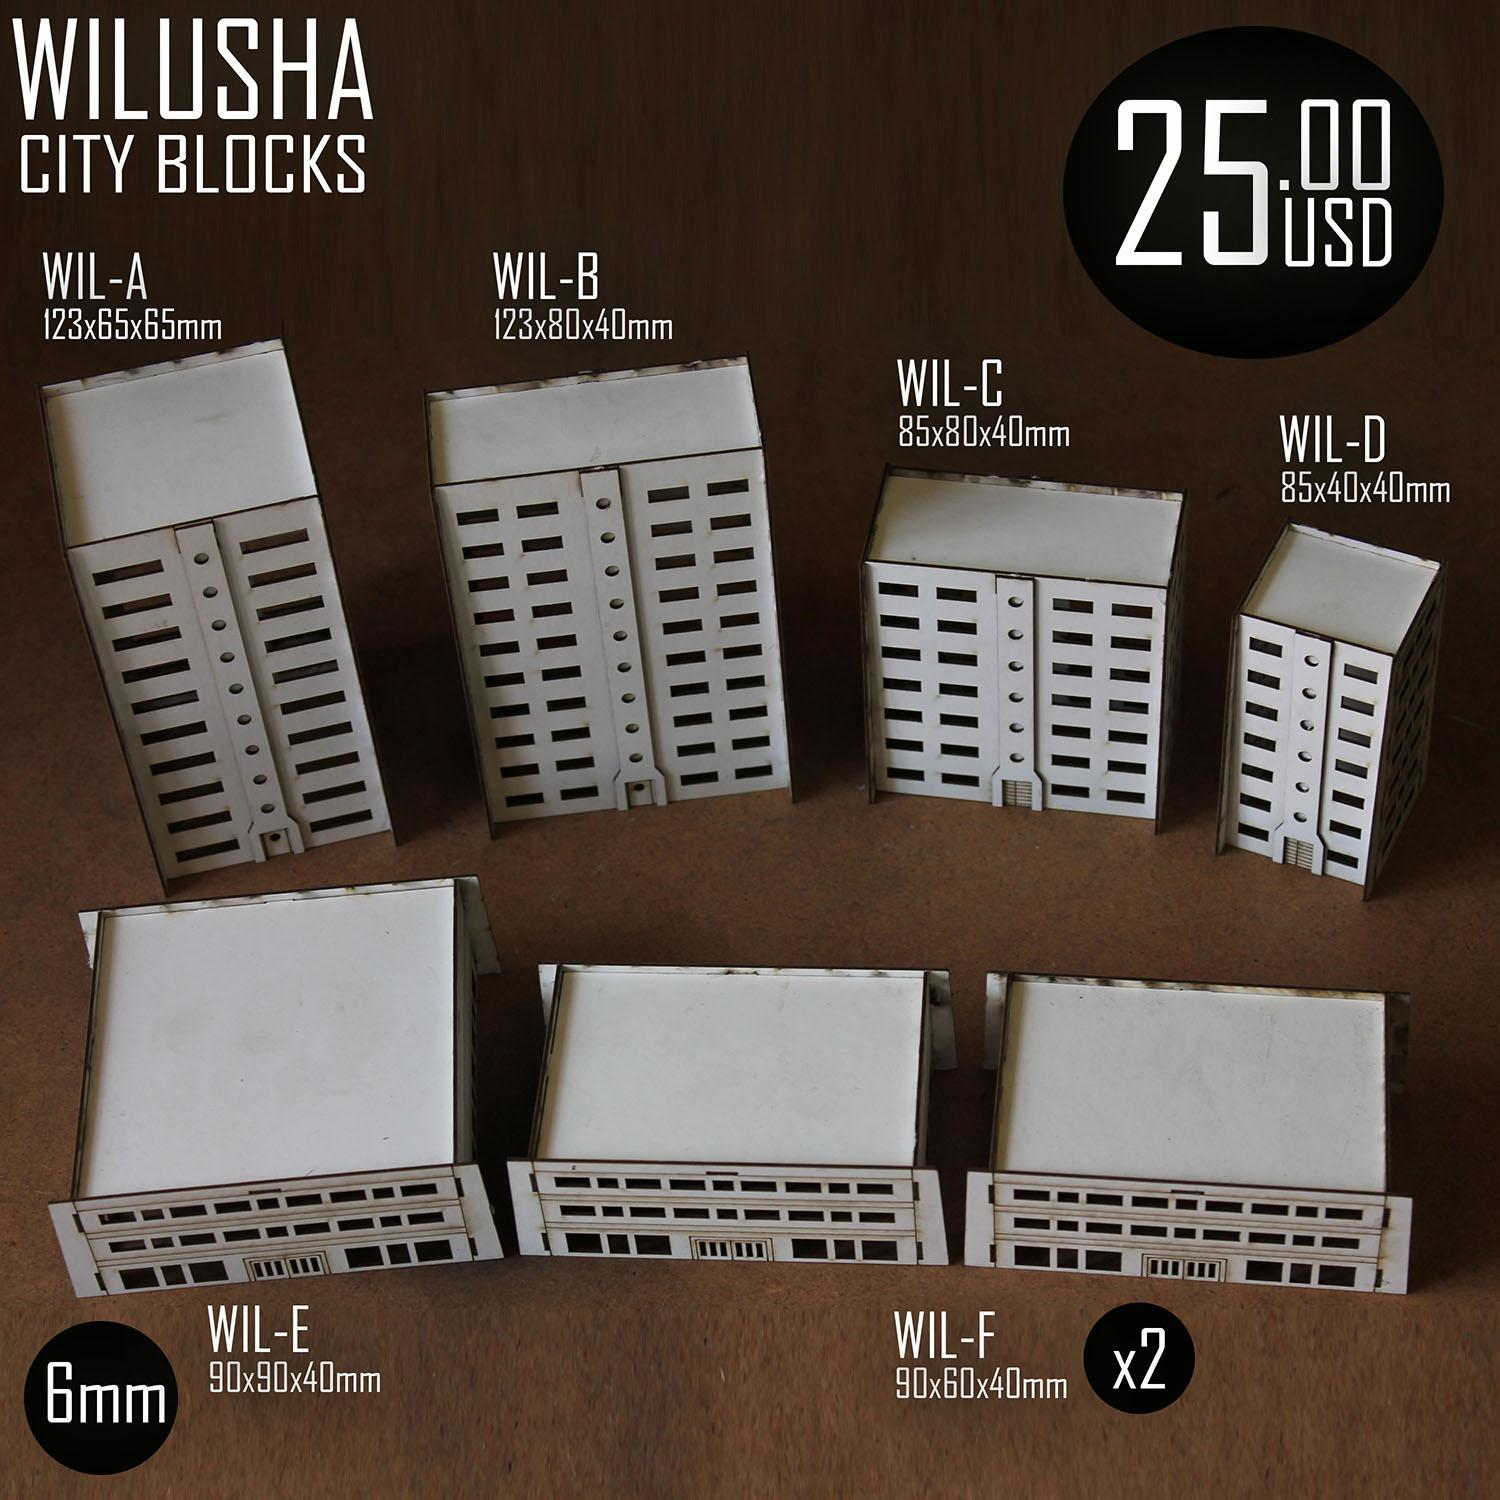 wilusha city blocks